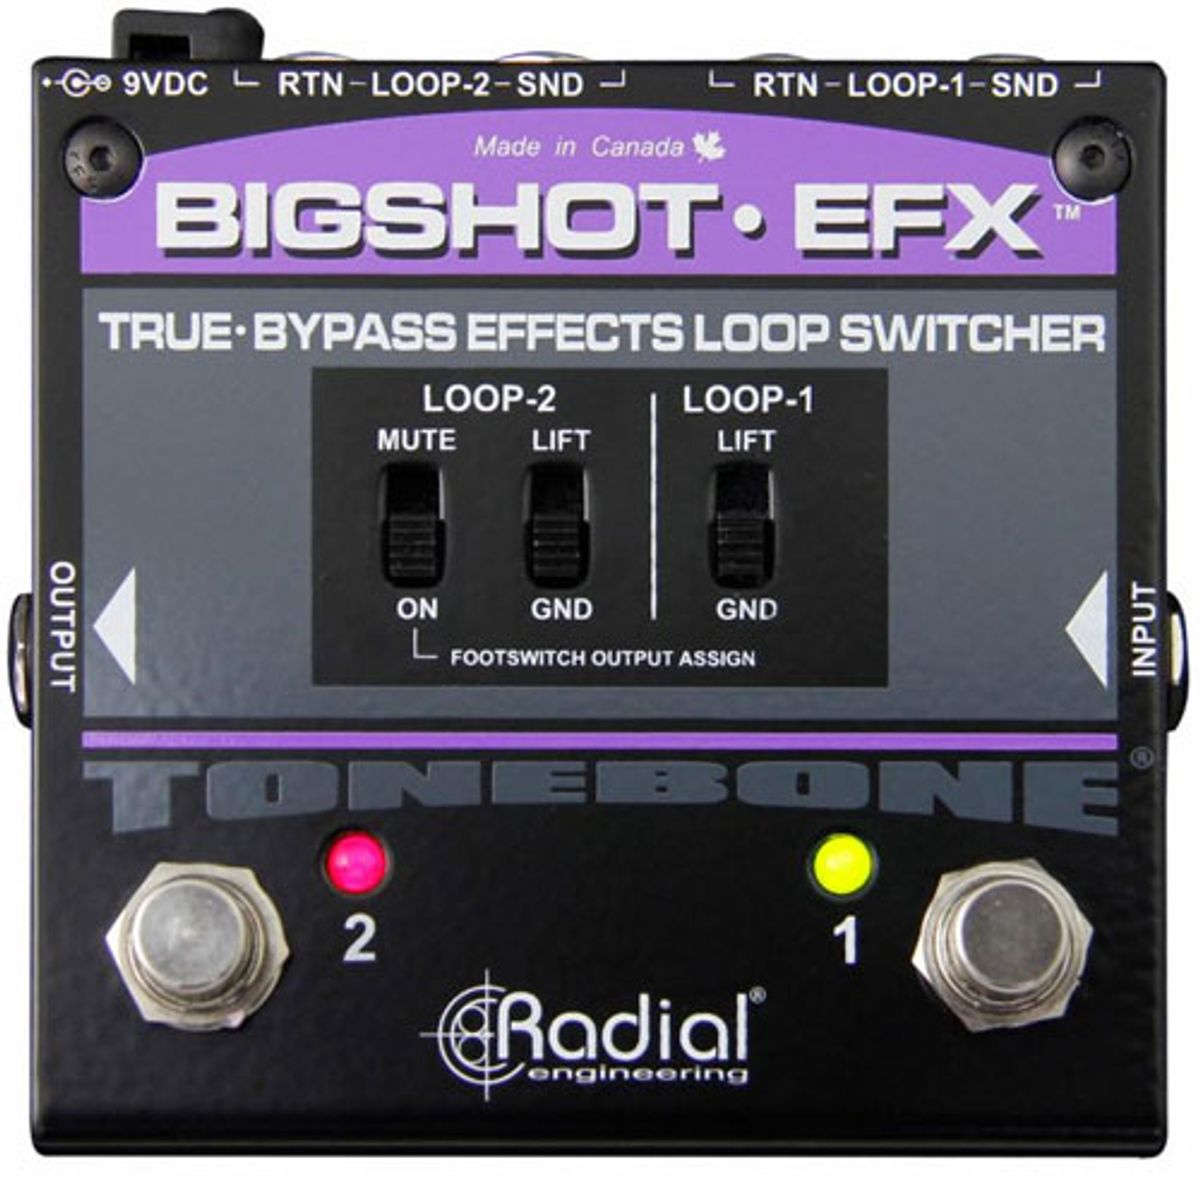 Radial Engineering Introduces the BigShot EFX